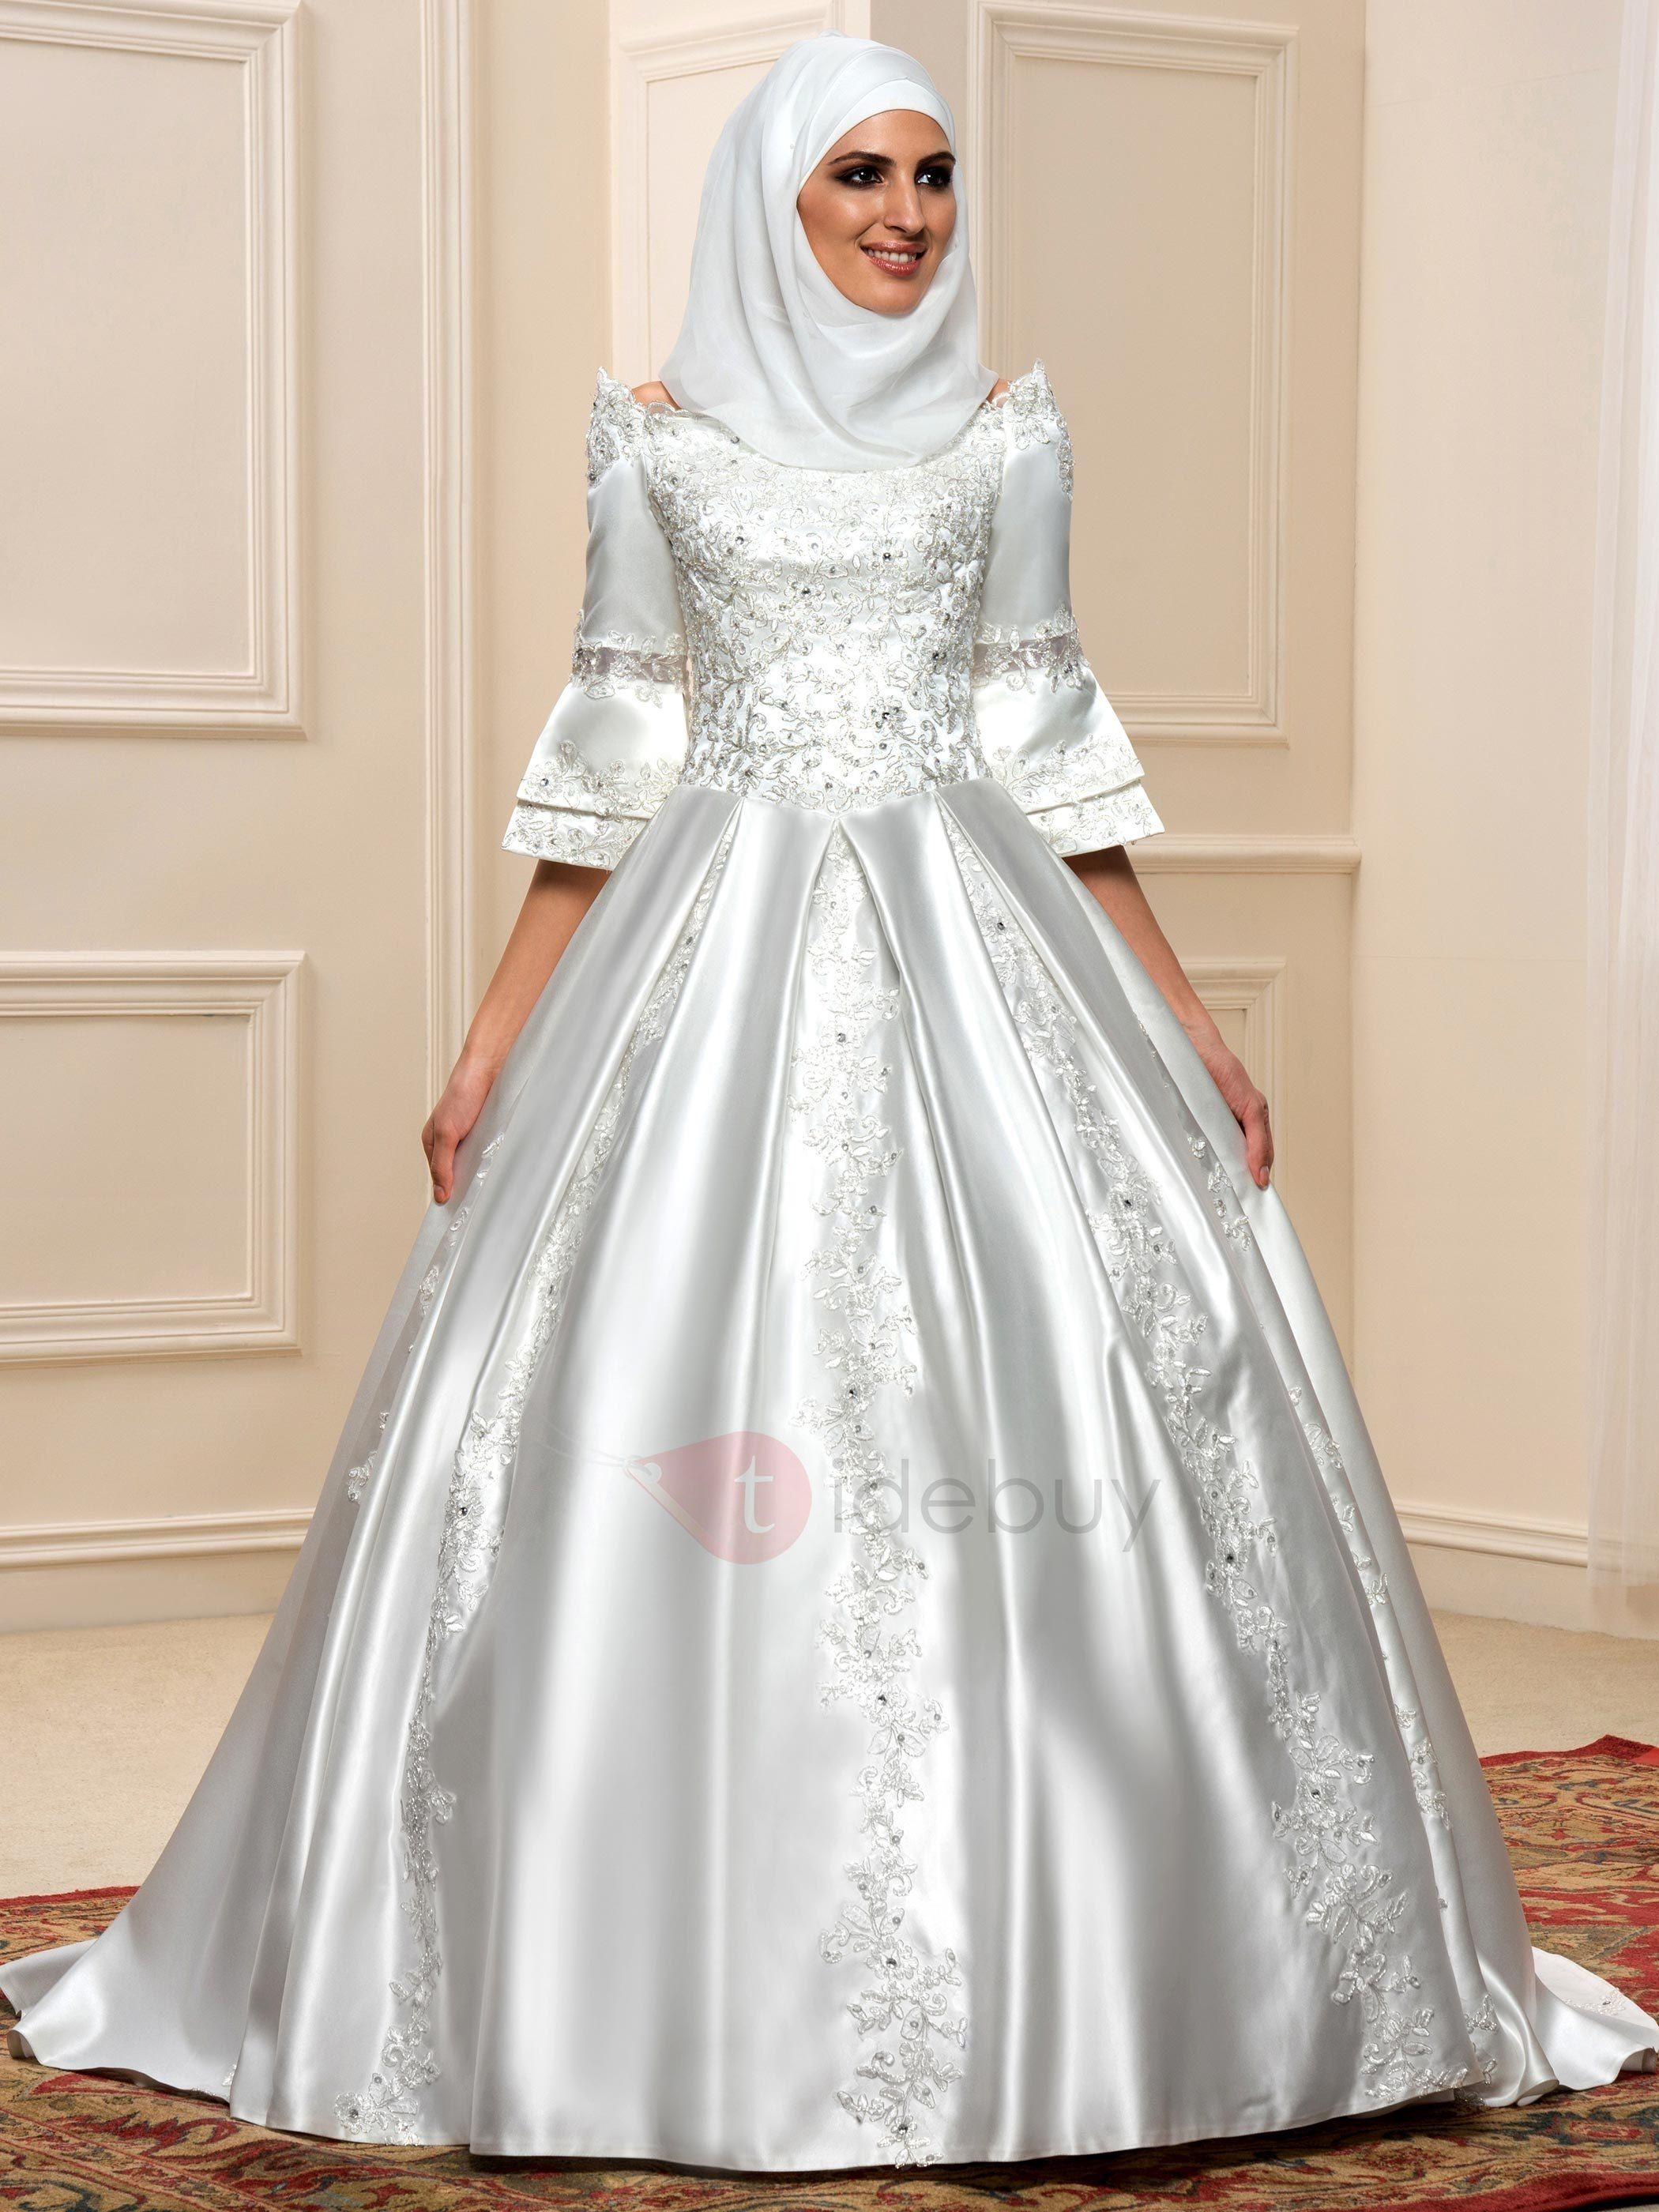 3 4 sleeve lace wedding dress  Sequined Lace  Sleeves Lace Up Arabic Wedding Dress  VINTAGE